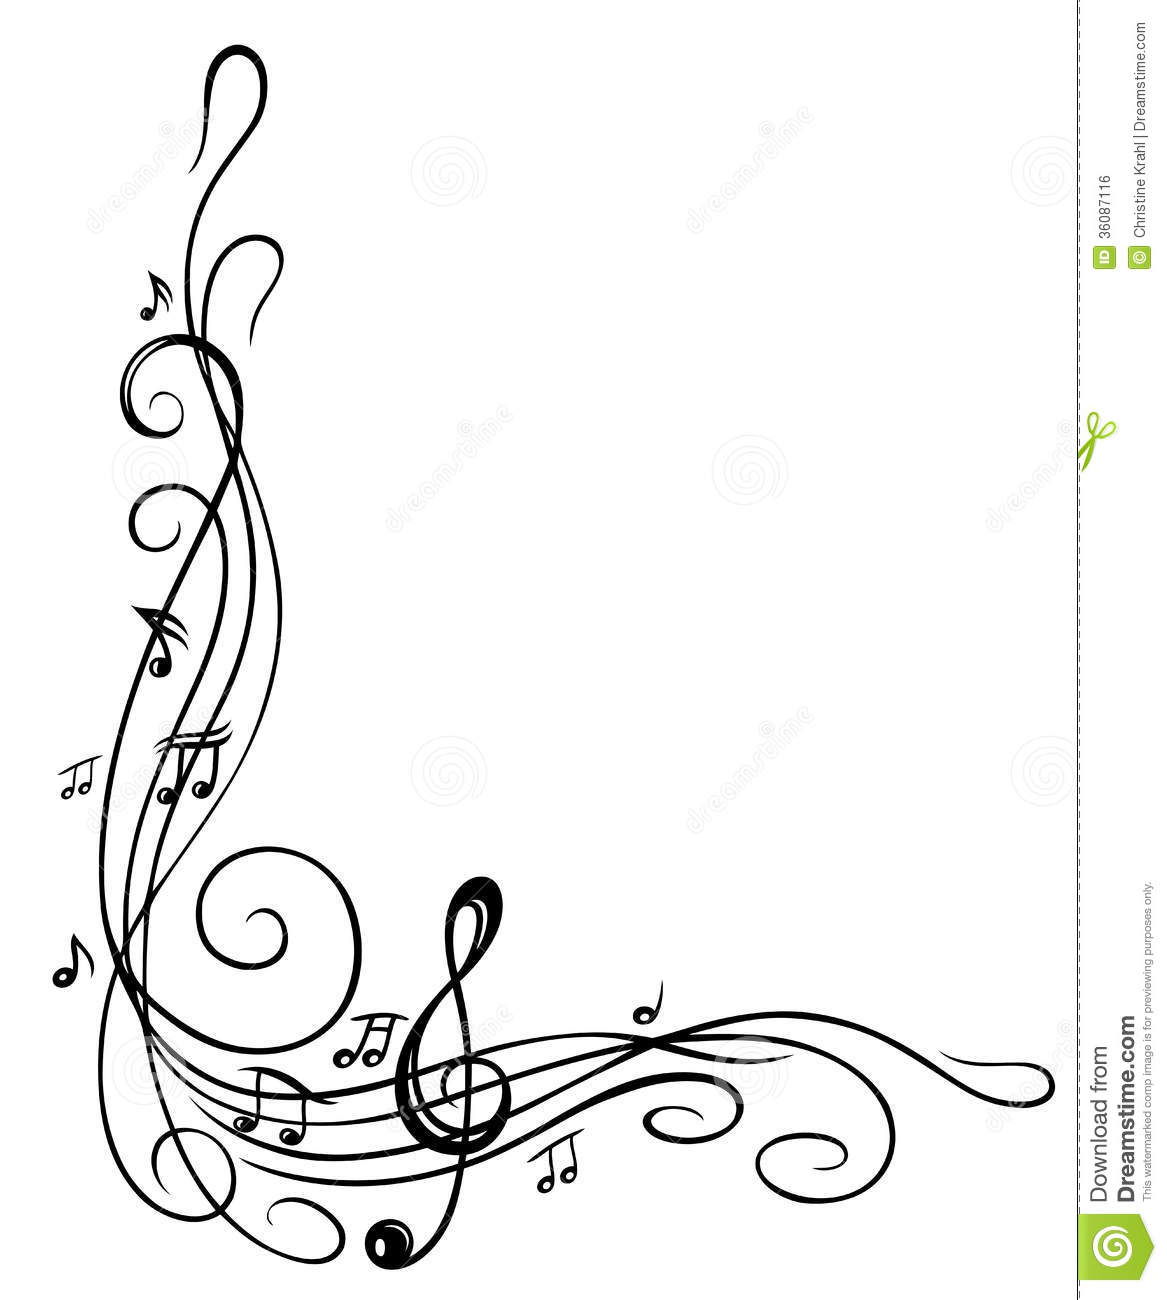 4a50685290016 Clef with music sheet and music notes